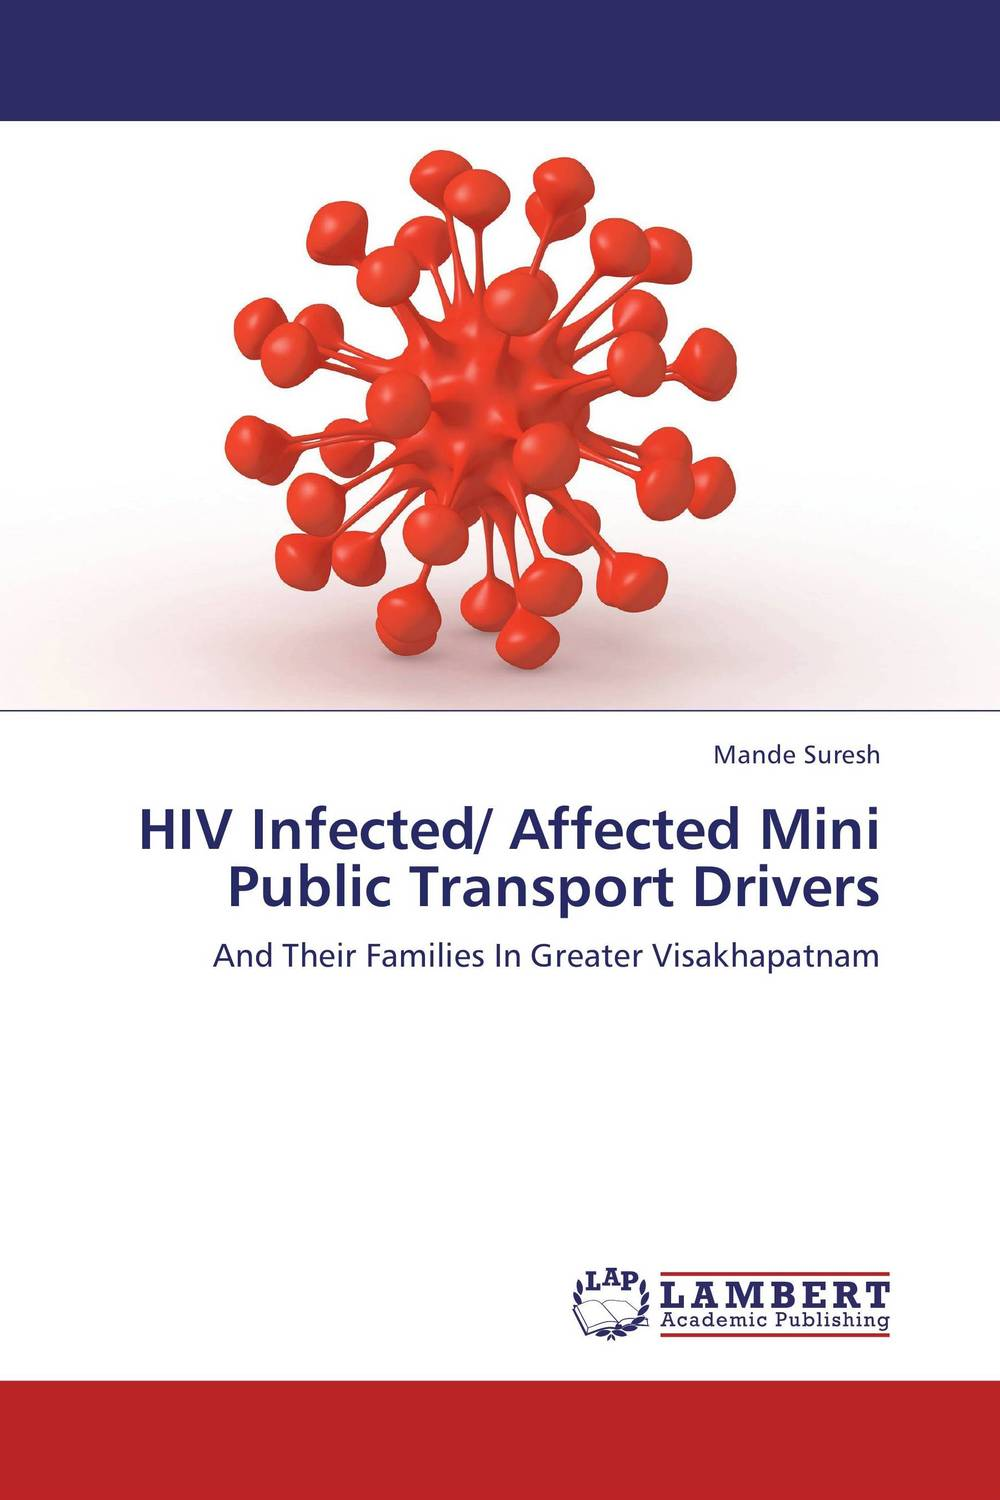 HIV Infected/ Affected Mini Public Transport Drivers hiv aids and public policy in ghana